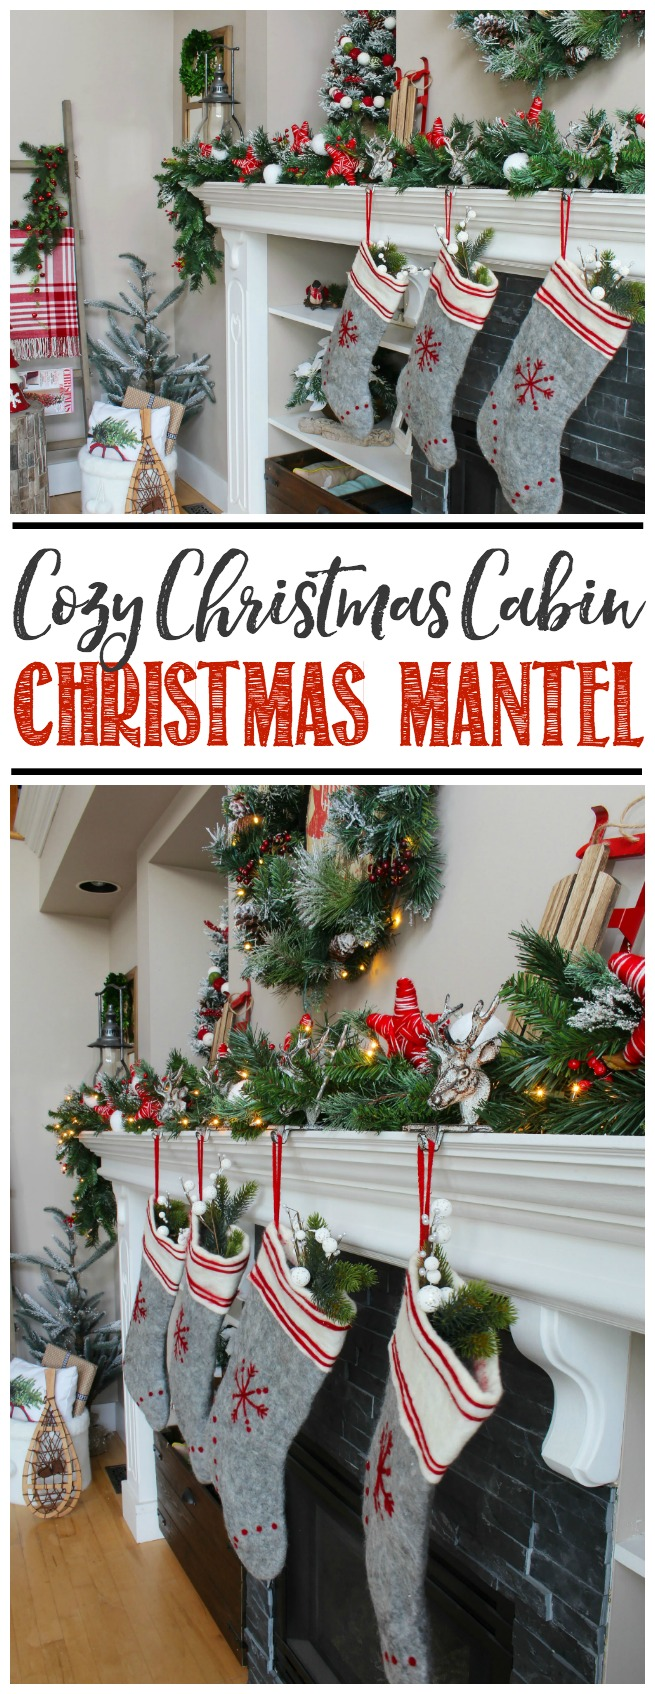 Cozy Christmas cabin Christmas mantel - snowy covered branches with red and white.